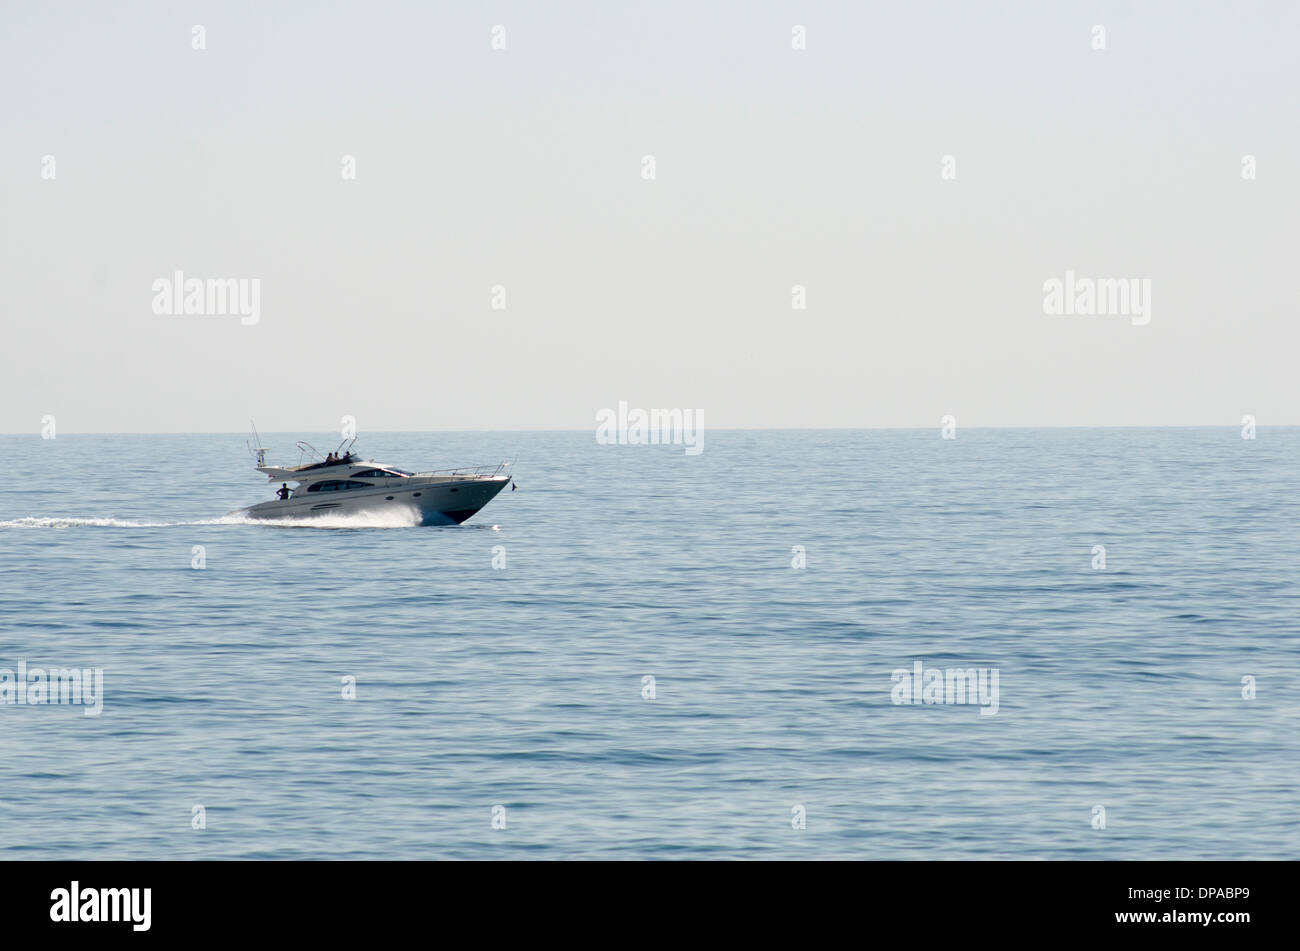 A small cruiser boat in the mediteranean sea - Stock Image